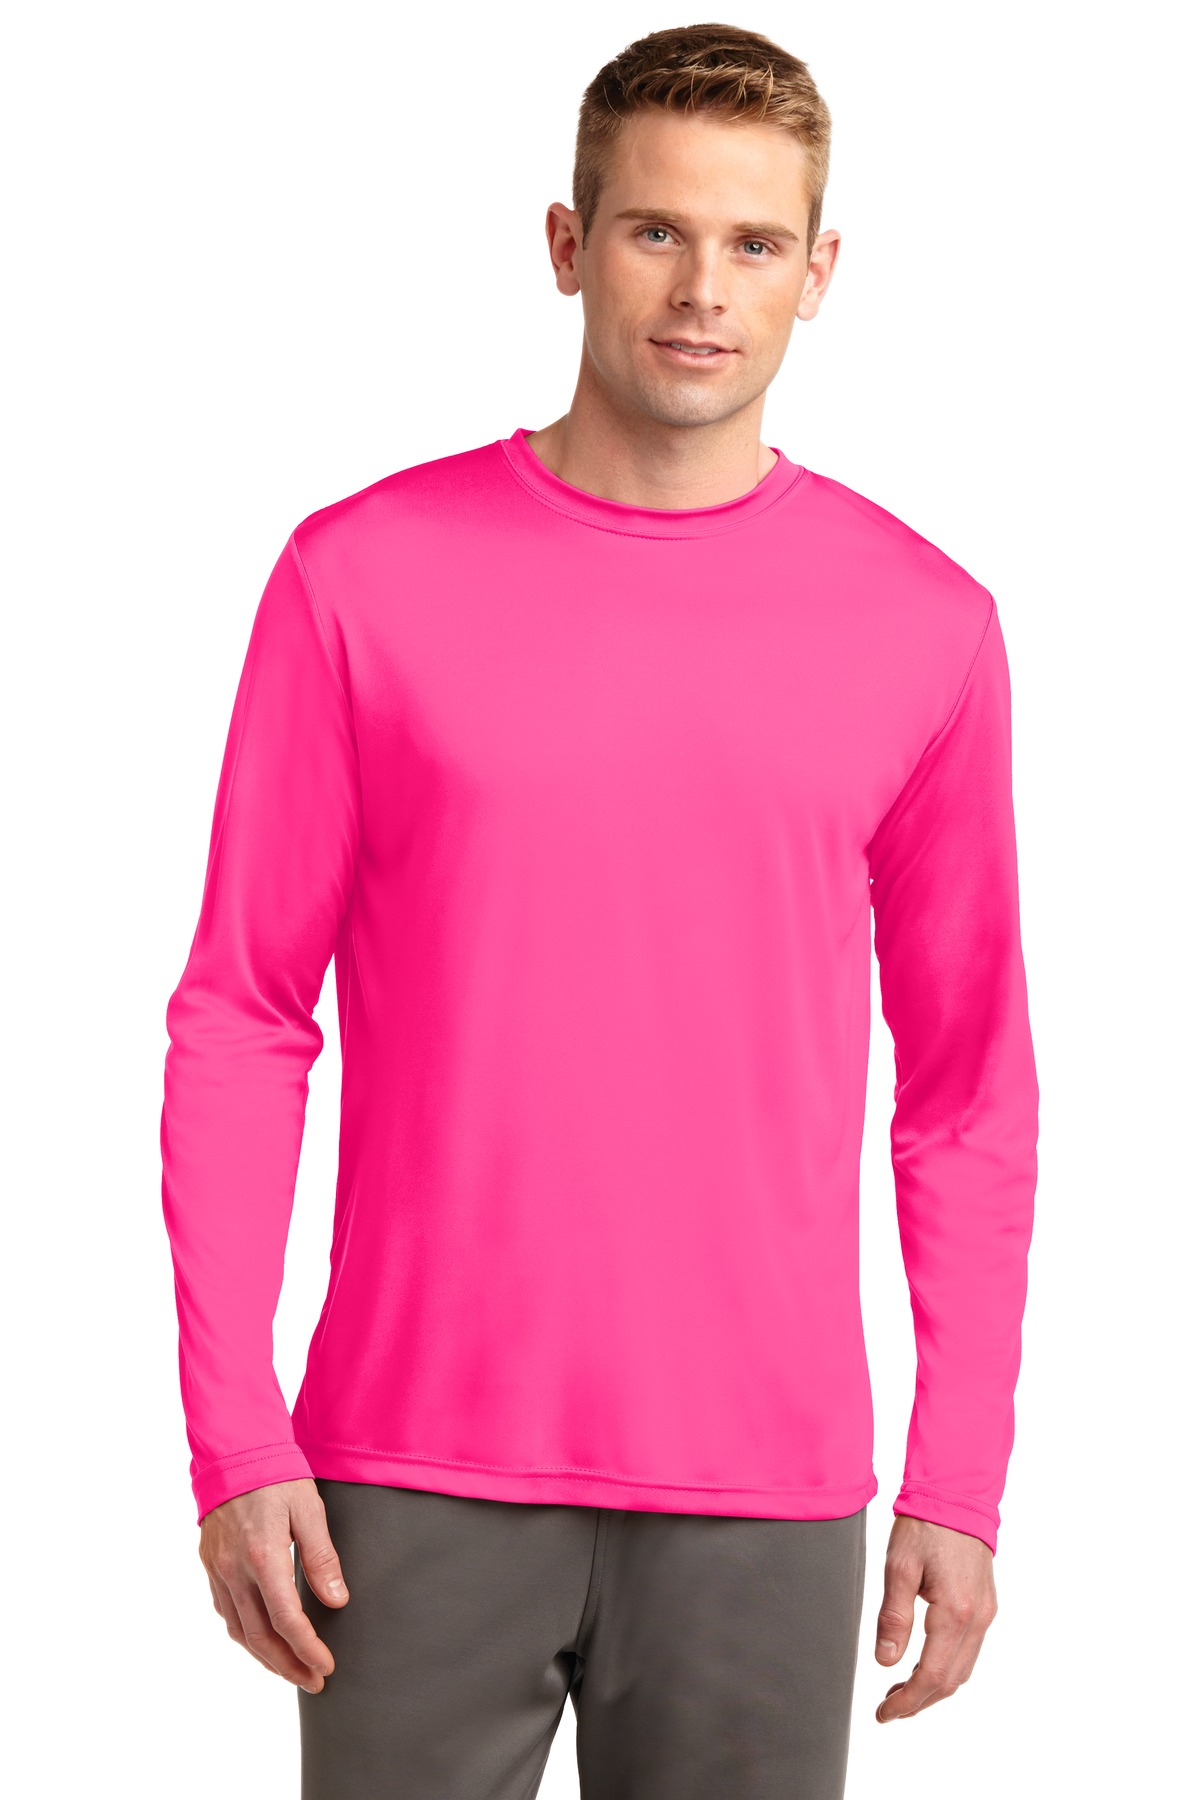 Sport-Tek ®  Long Sleeve PosiCharge ®  Competitor™ Tee. ST350LS - Neon Pink